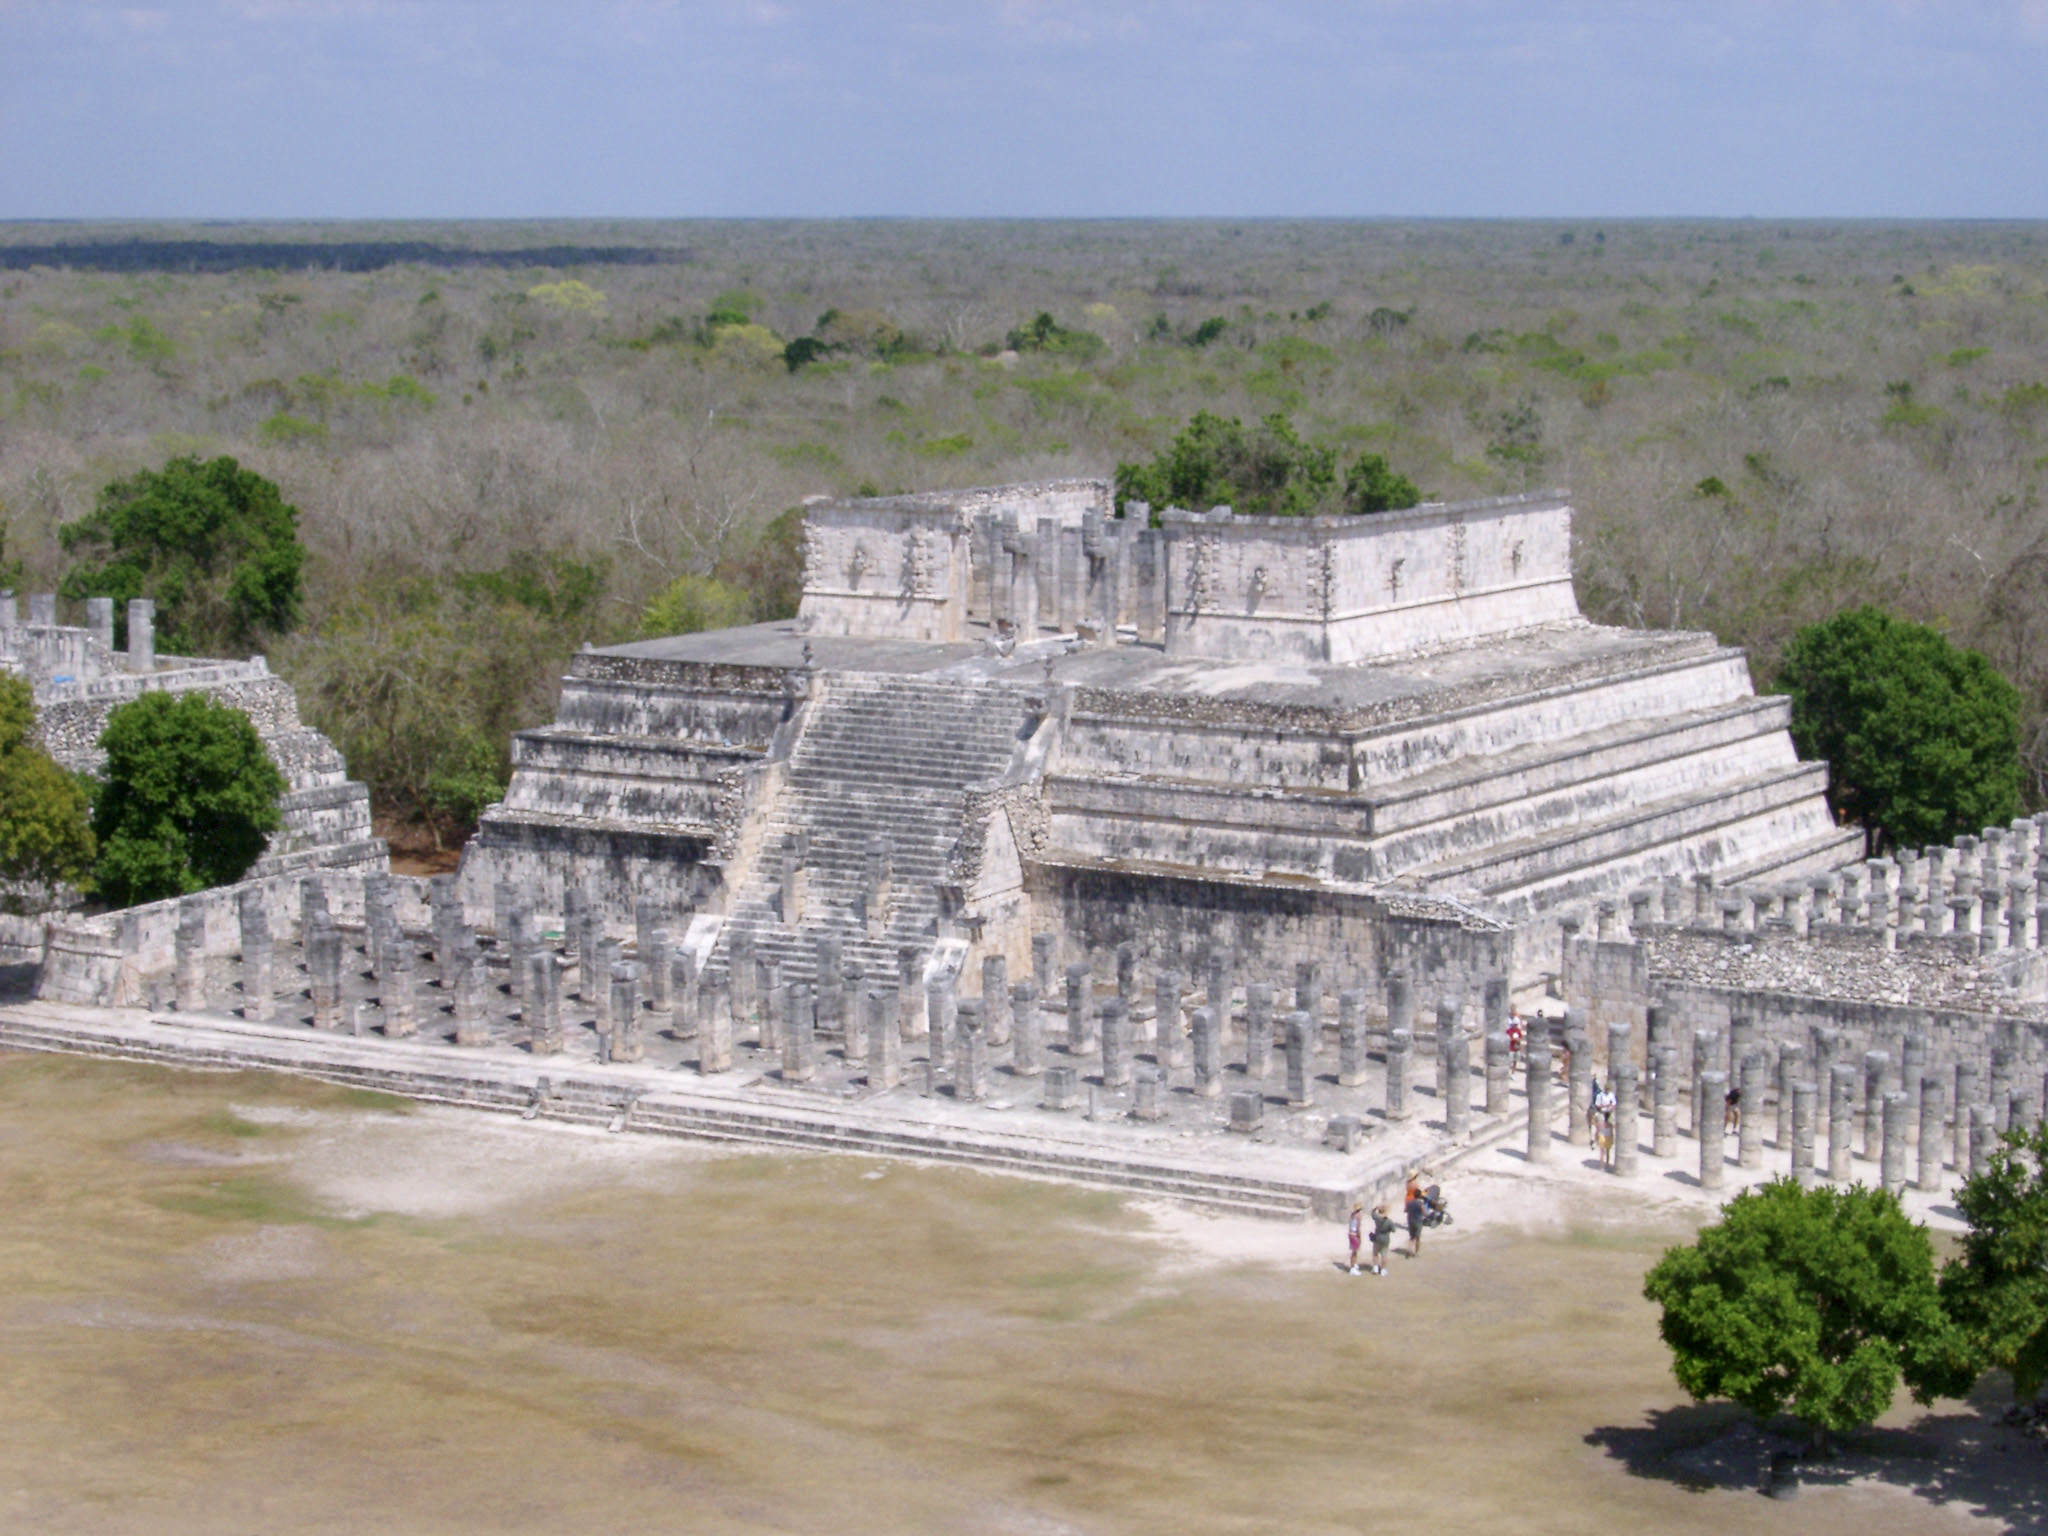 Temple of the Warriors, Chitzen Itza, the site of important archaeological Mayan ruins in the Yucatan Peninsula, Mexico